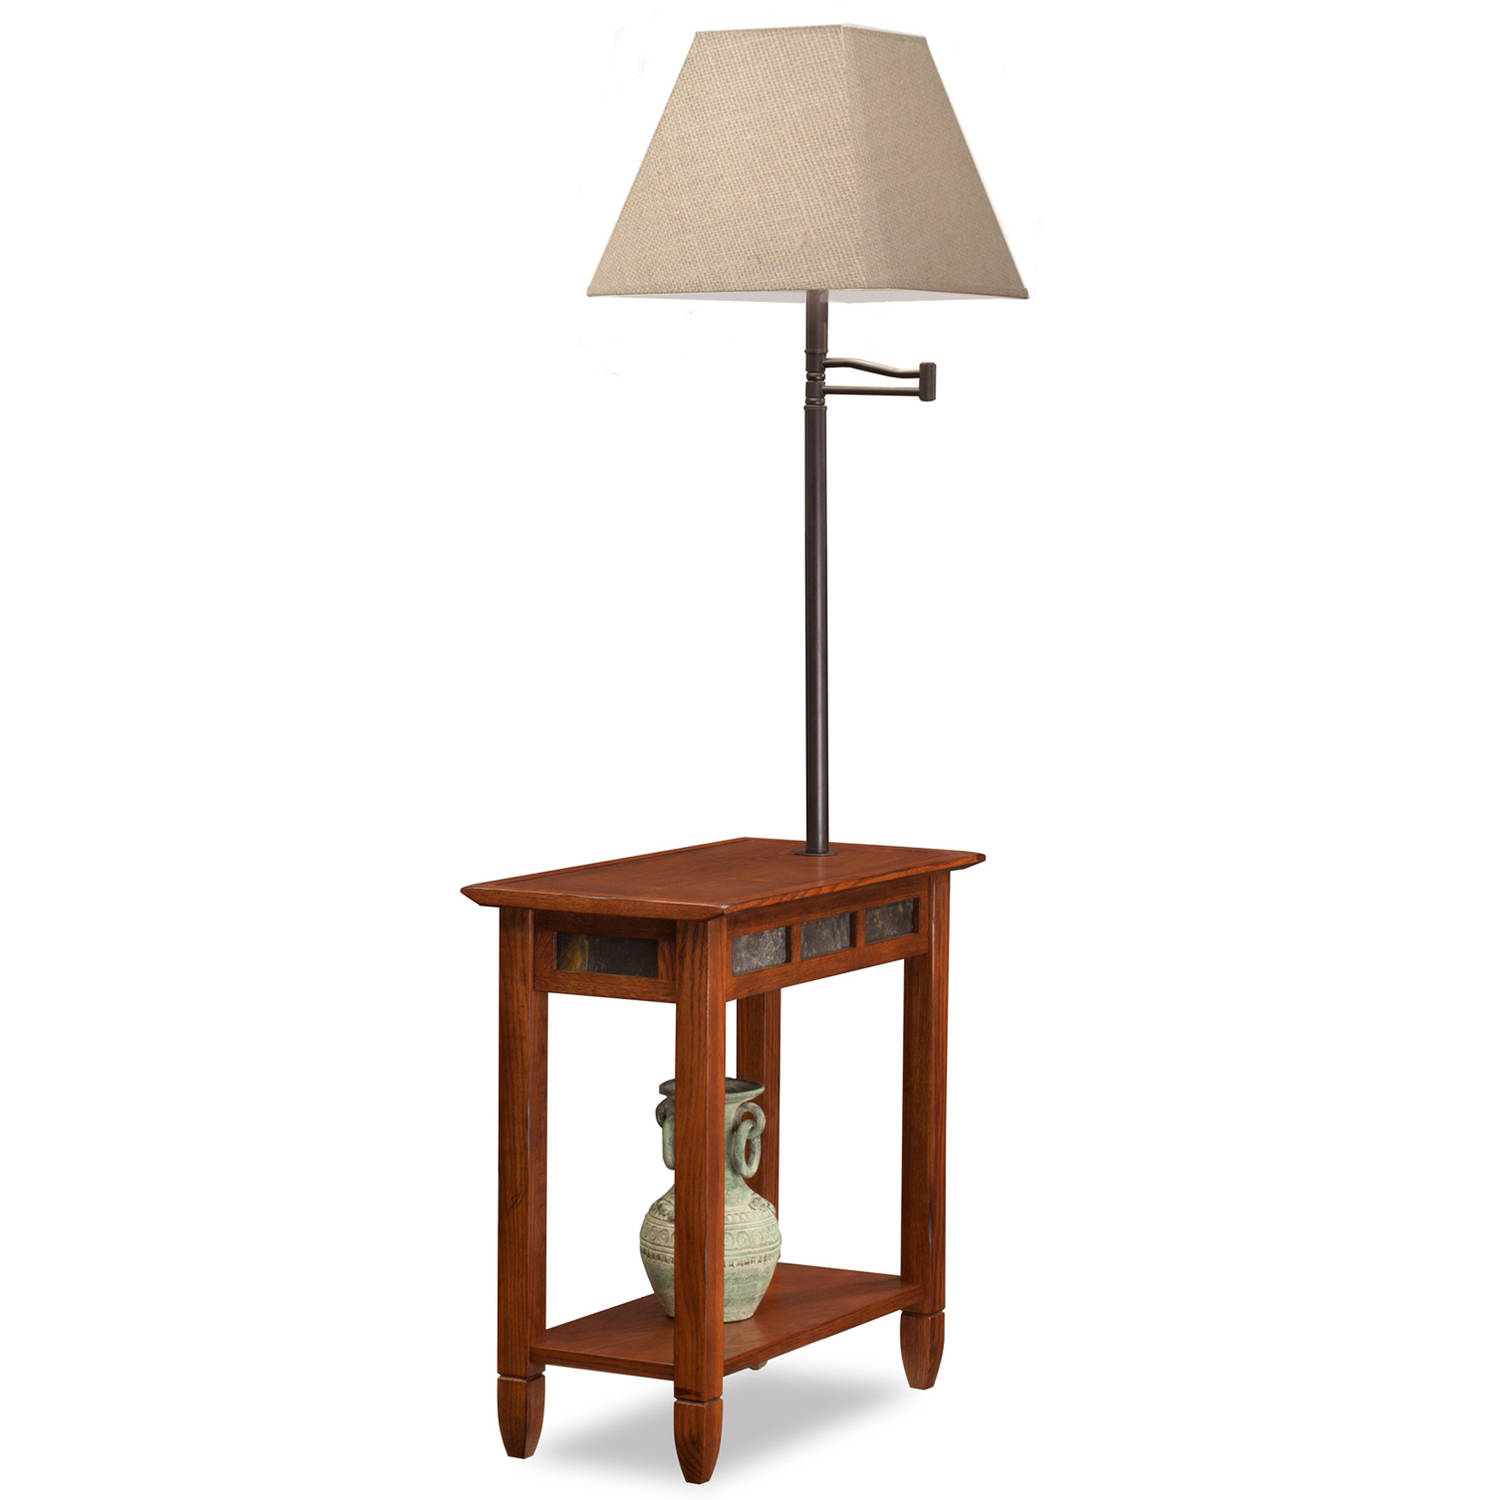 Leick Home Rustic Slate Chairside Lamp Table by Leick Furniture